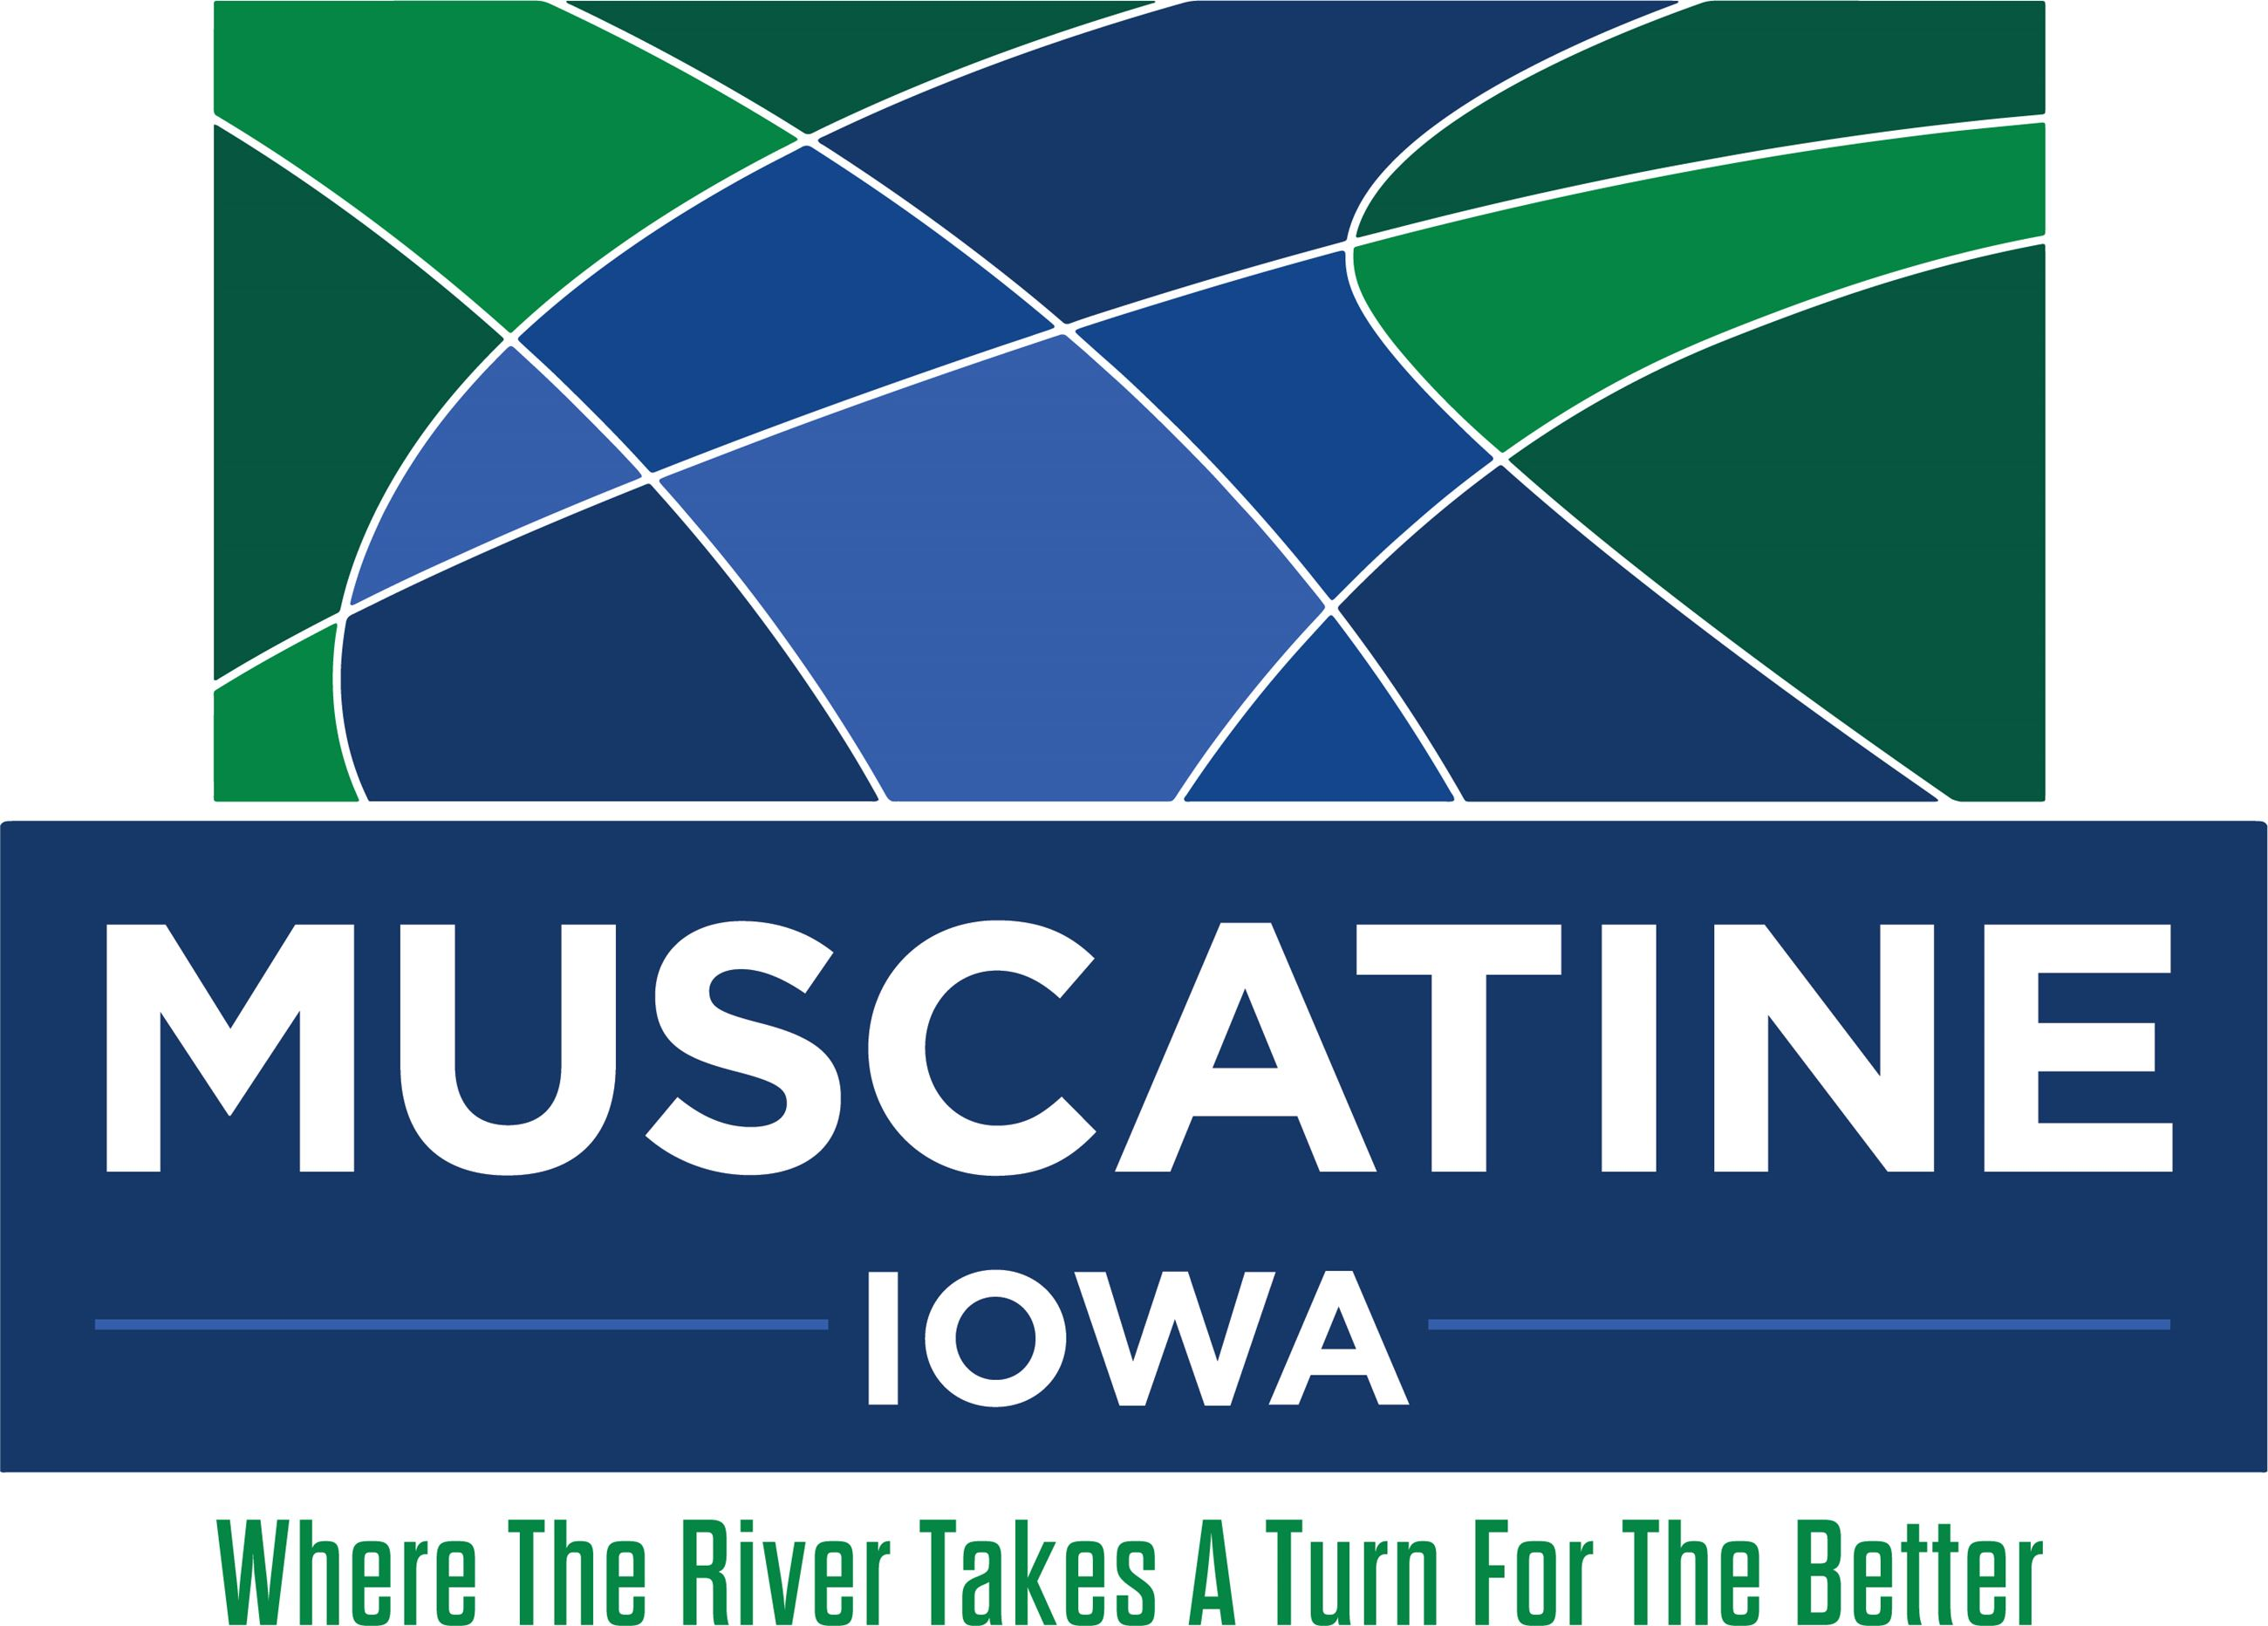 Muscatine Iowa Where the River Takes a Turn for the Better